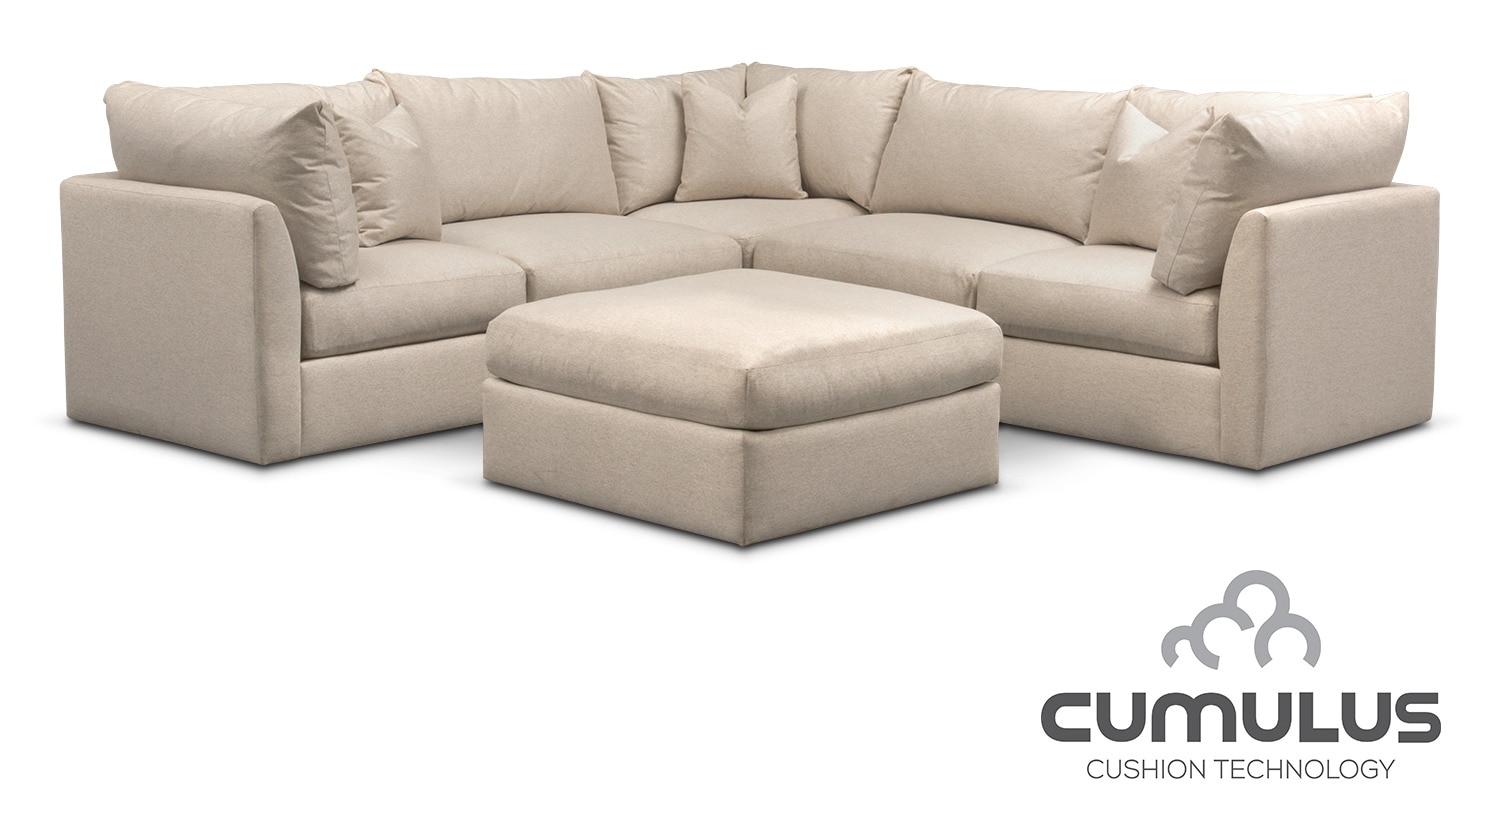 Trenton Cumulus 5 Piece Sectional And Ottoman Set   Linen Part 34